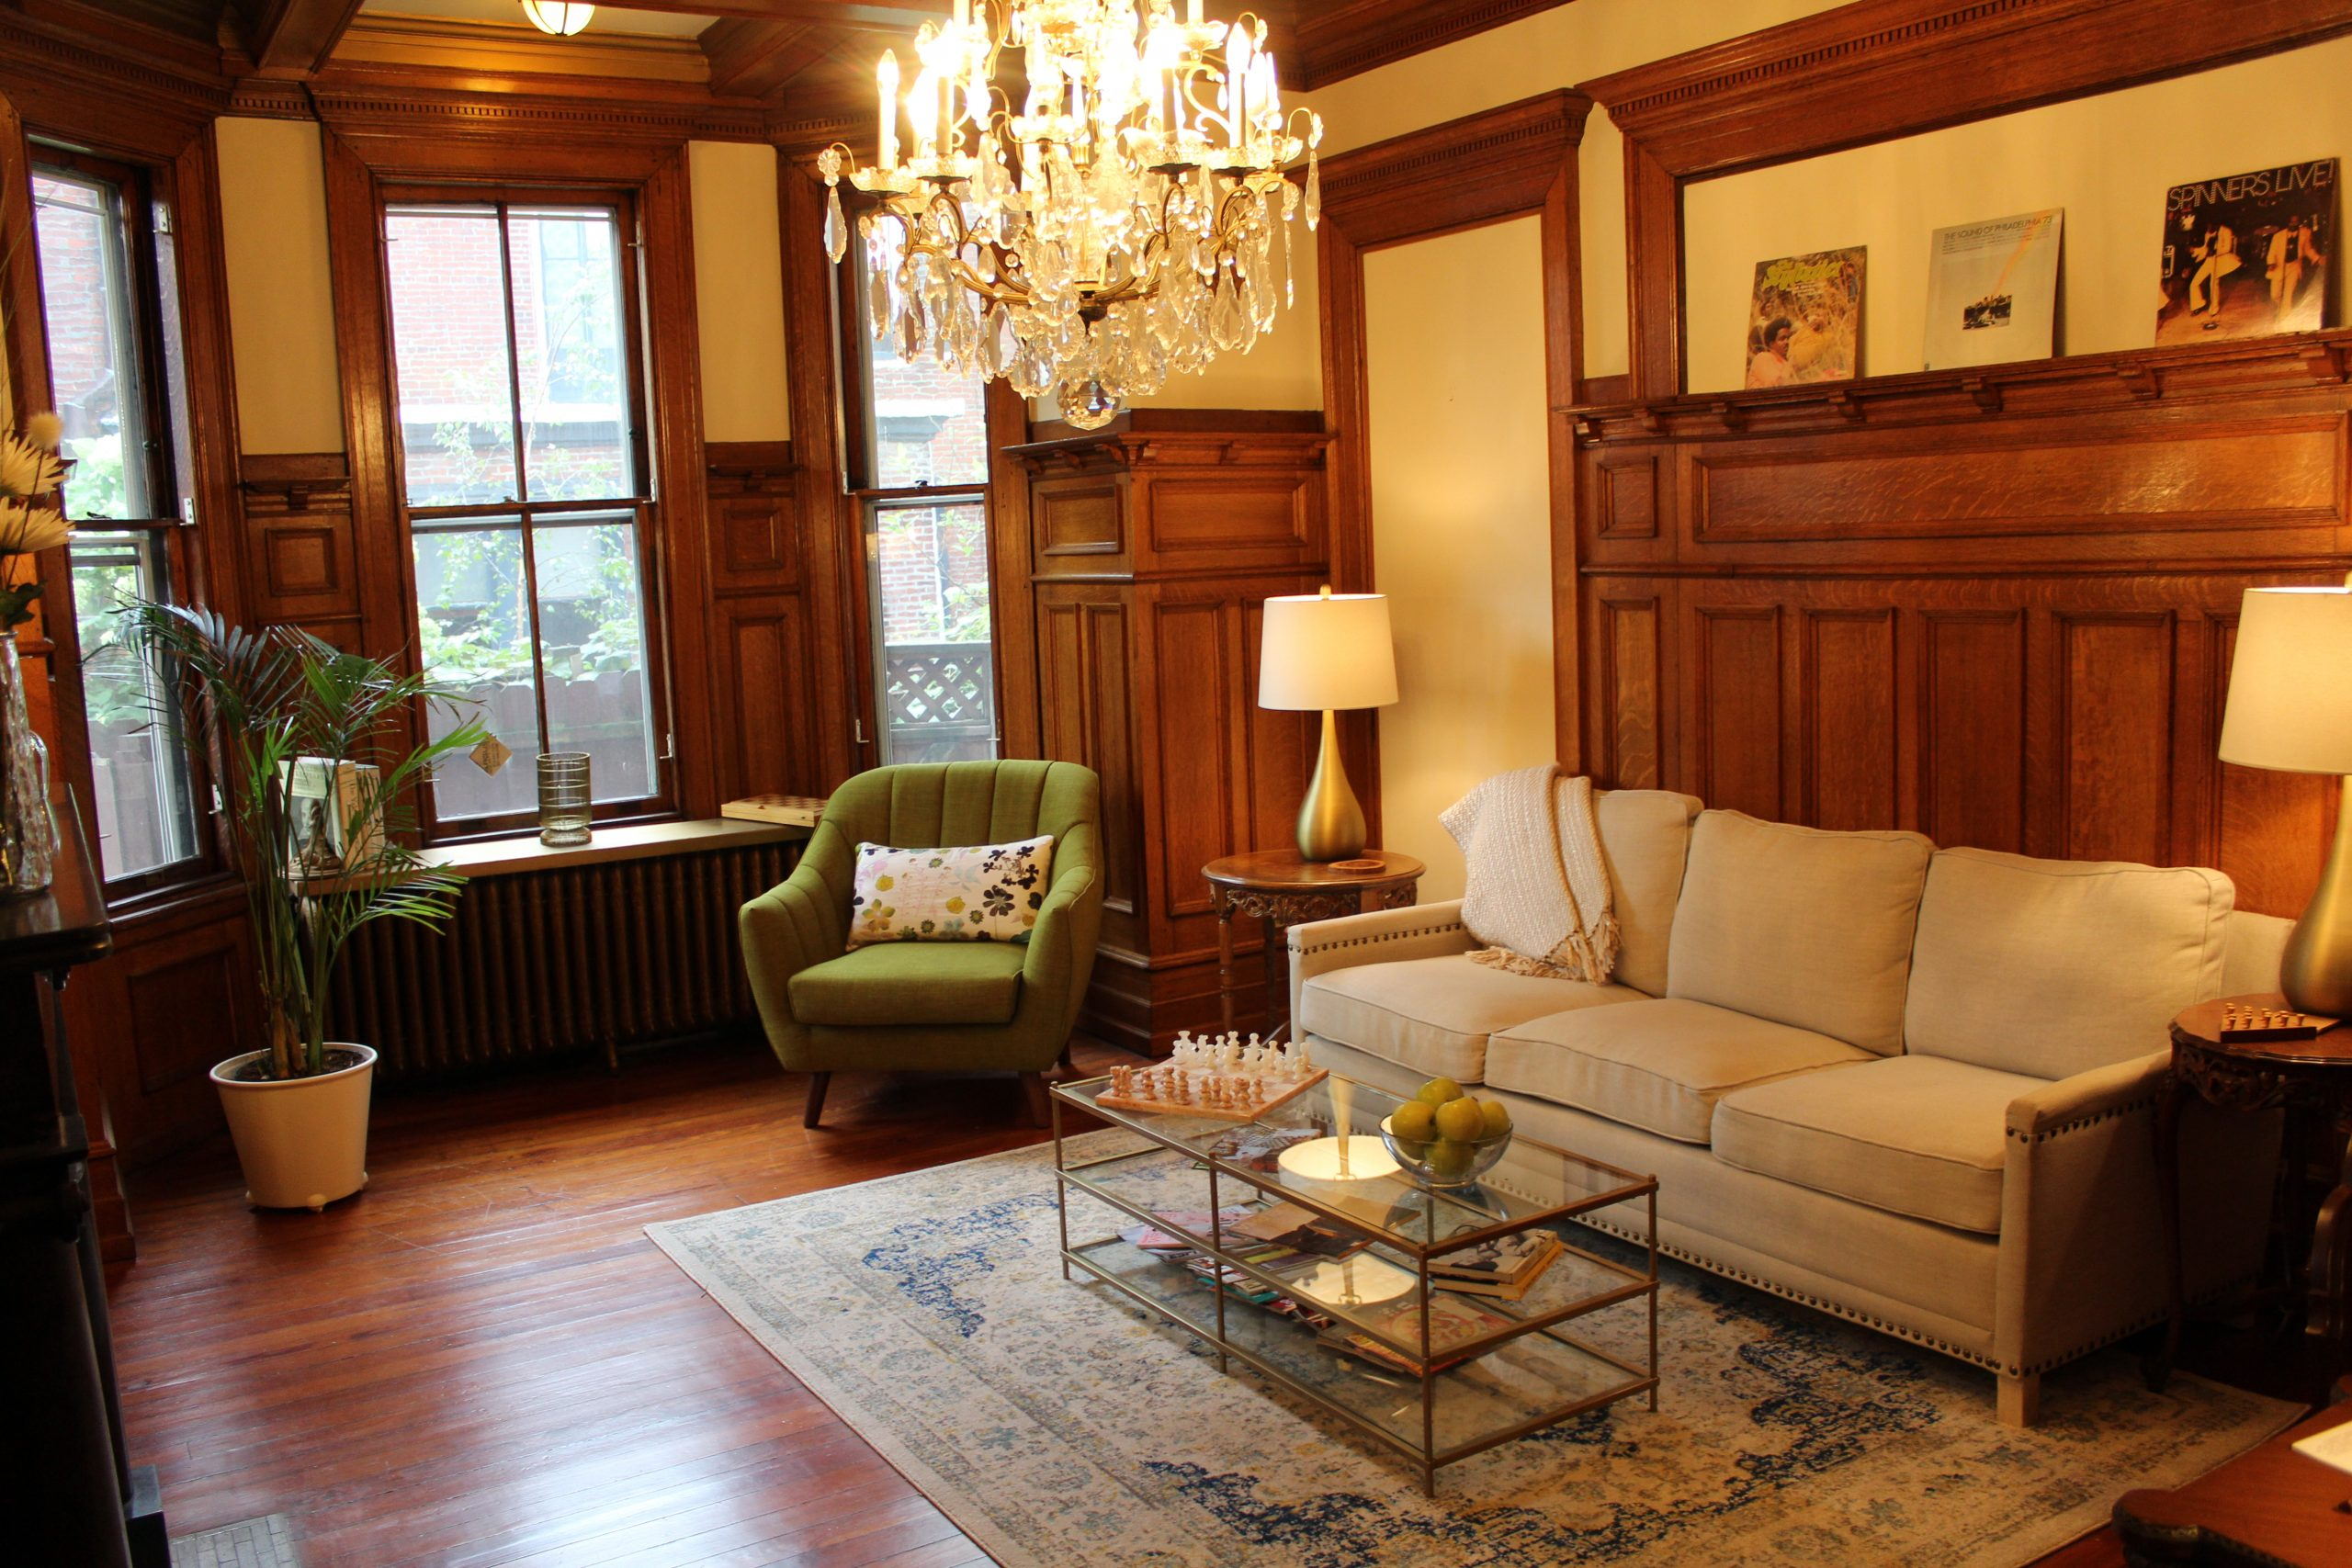 Akwaaba Expansion Brings Soul Inspired Bed and Breakfast to Philadelphia